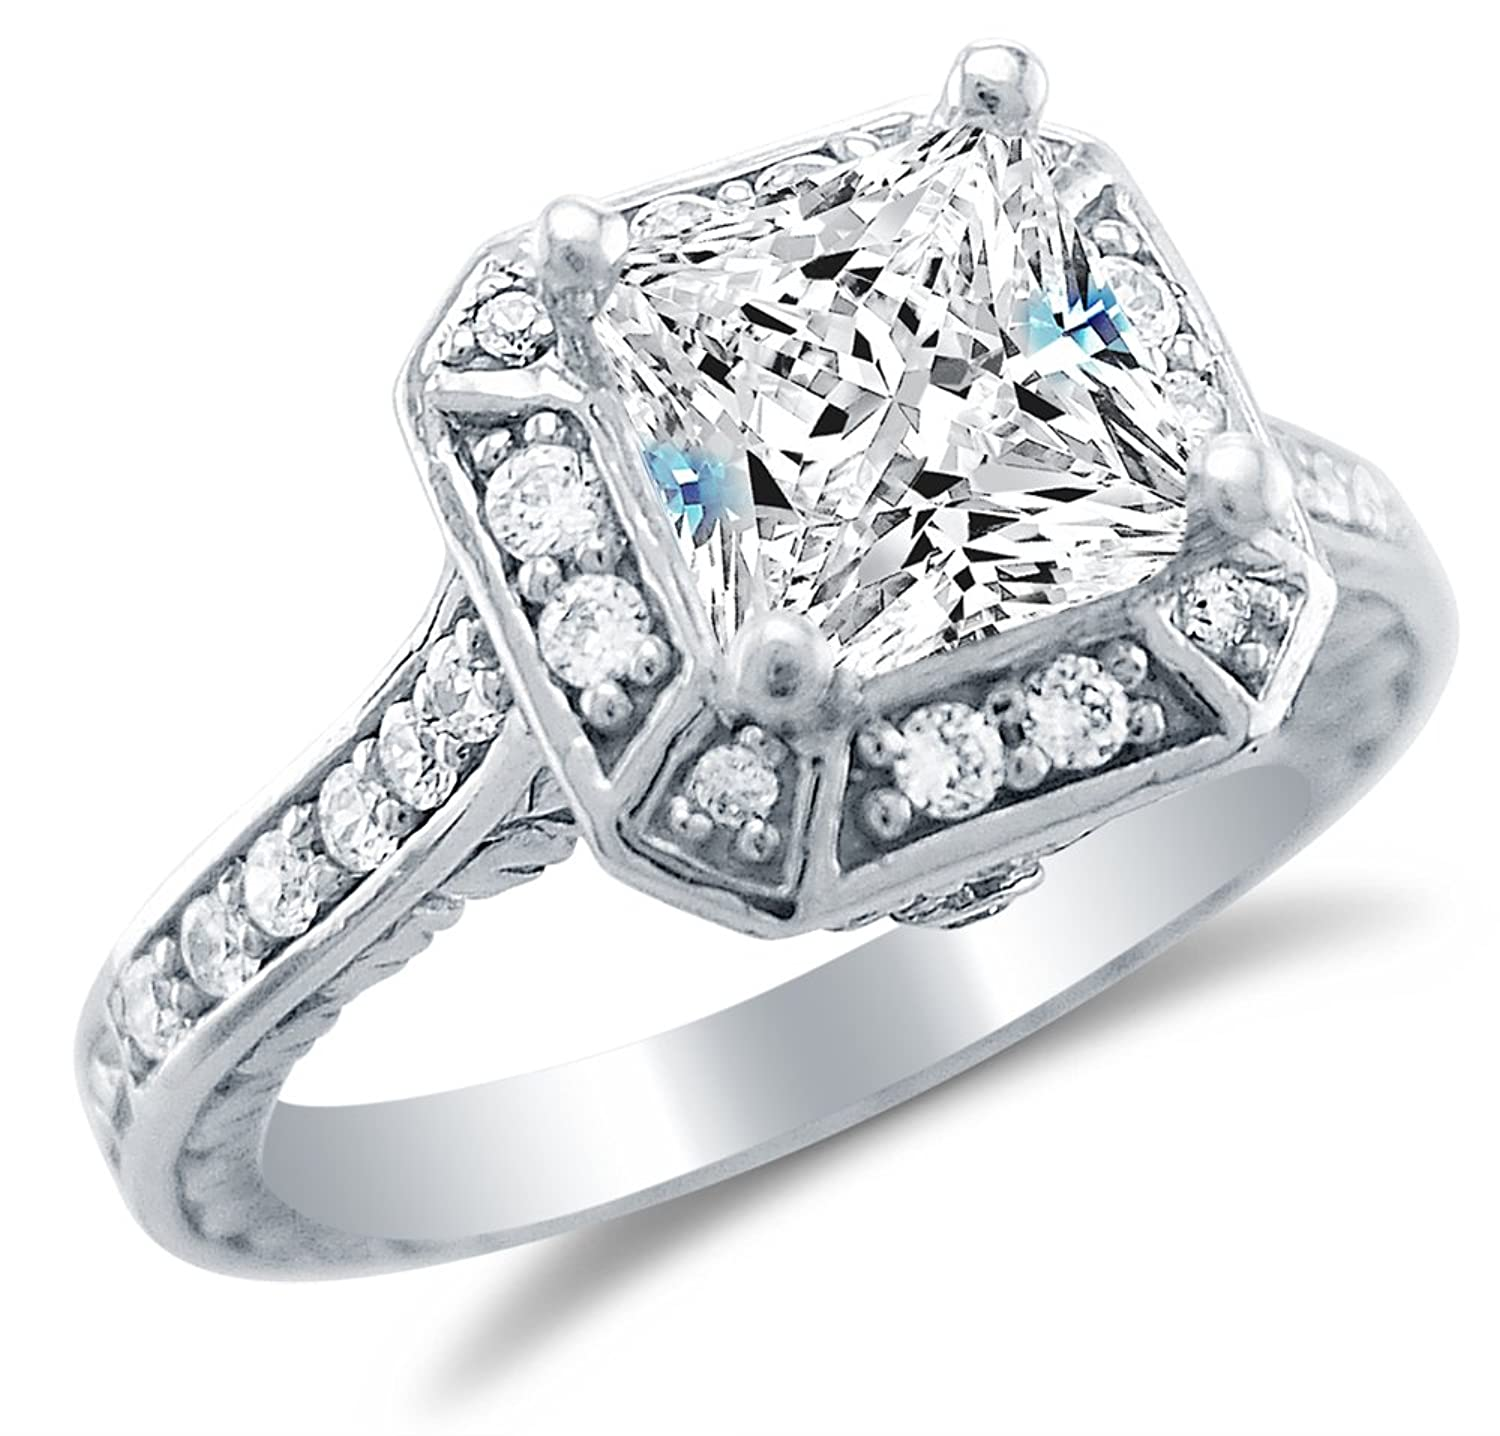 Solid 925 Sterling Silver Princess Cut Solitaire with Round Side Stones Highest Quality CZ Cubic Zirconia Engagement Ring 2.0ct. With Elegant Velvet Ring Box